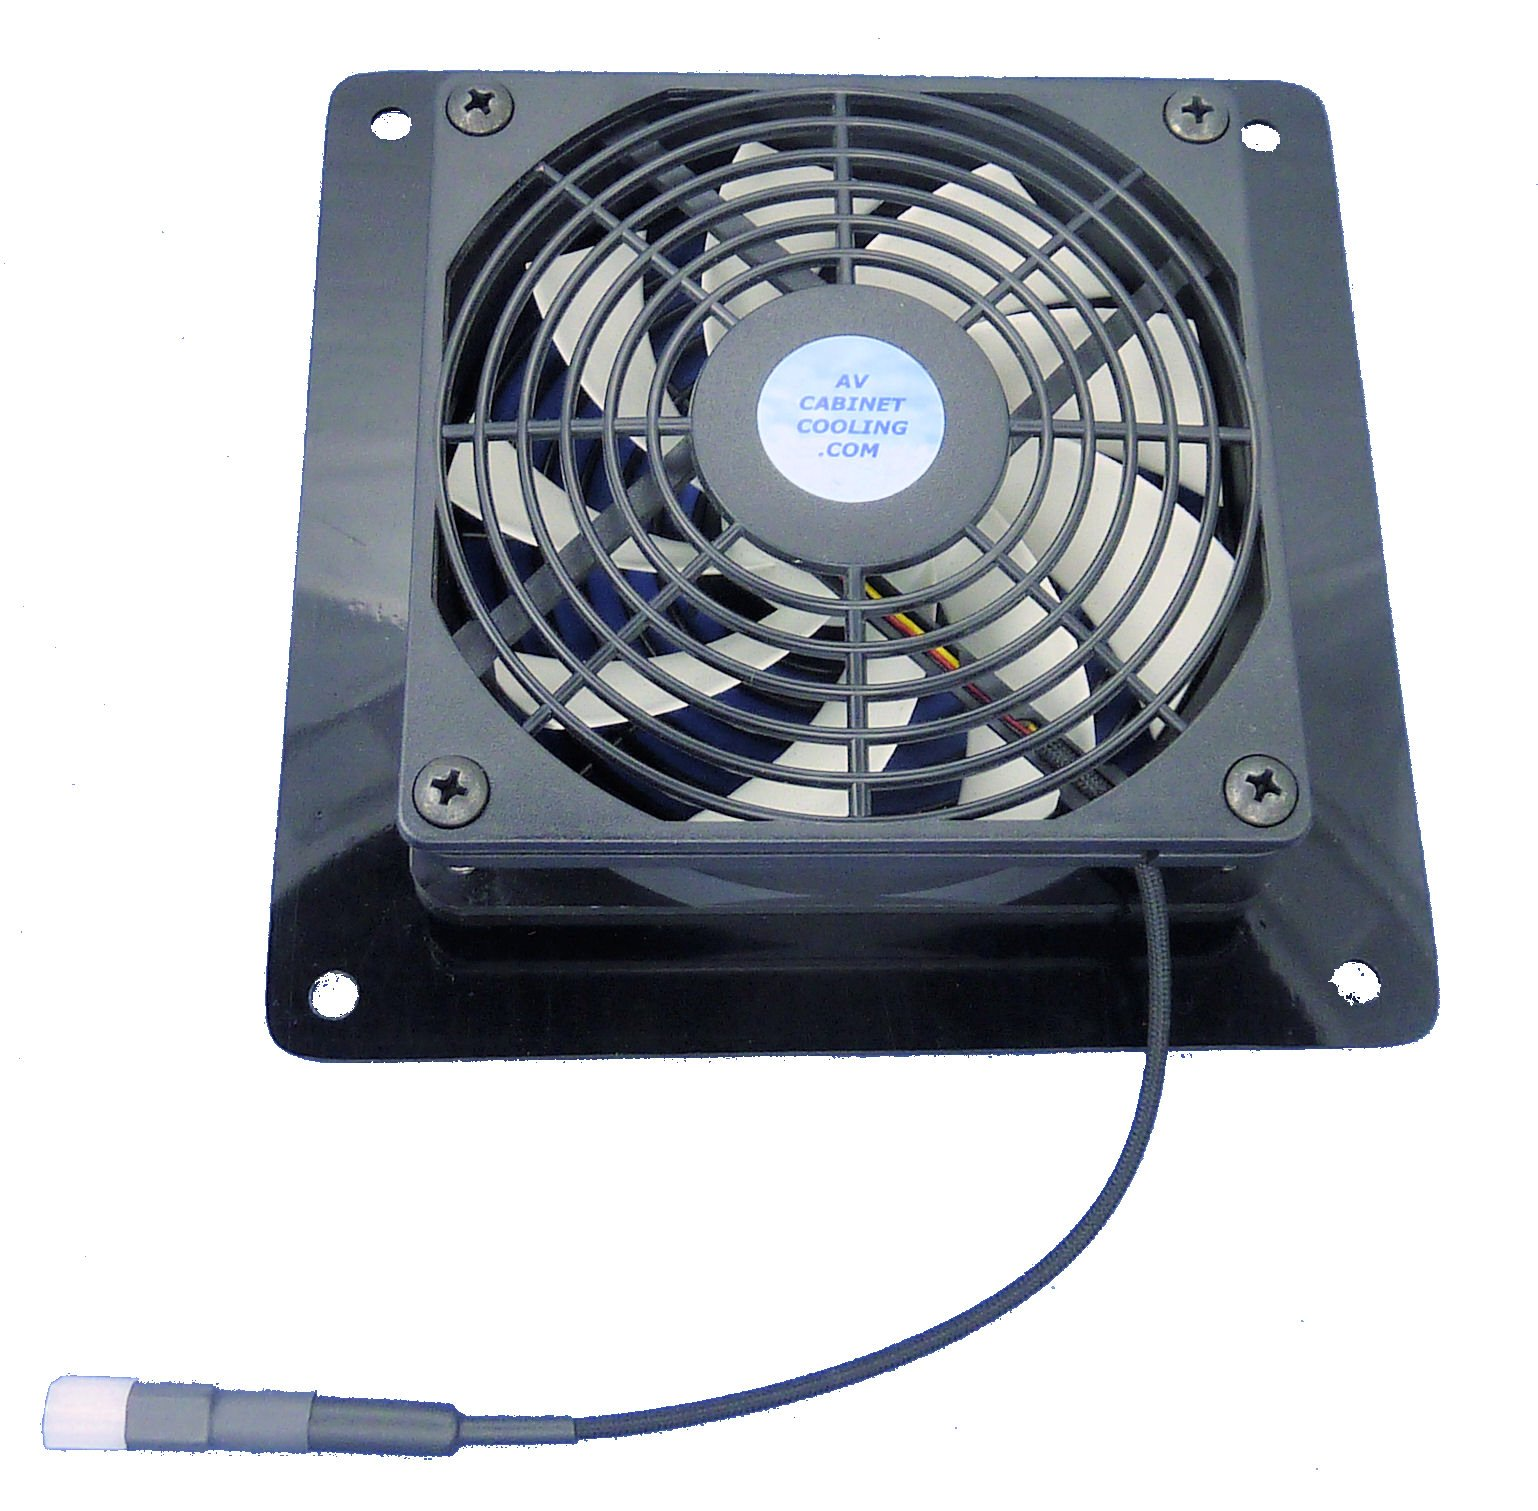 AV/Computer Cabinet Mega-fan Exhaust fan with thermostat & multi-speed control